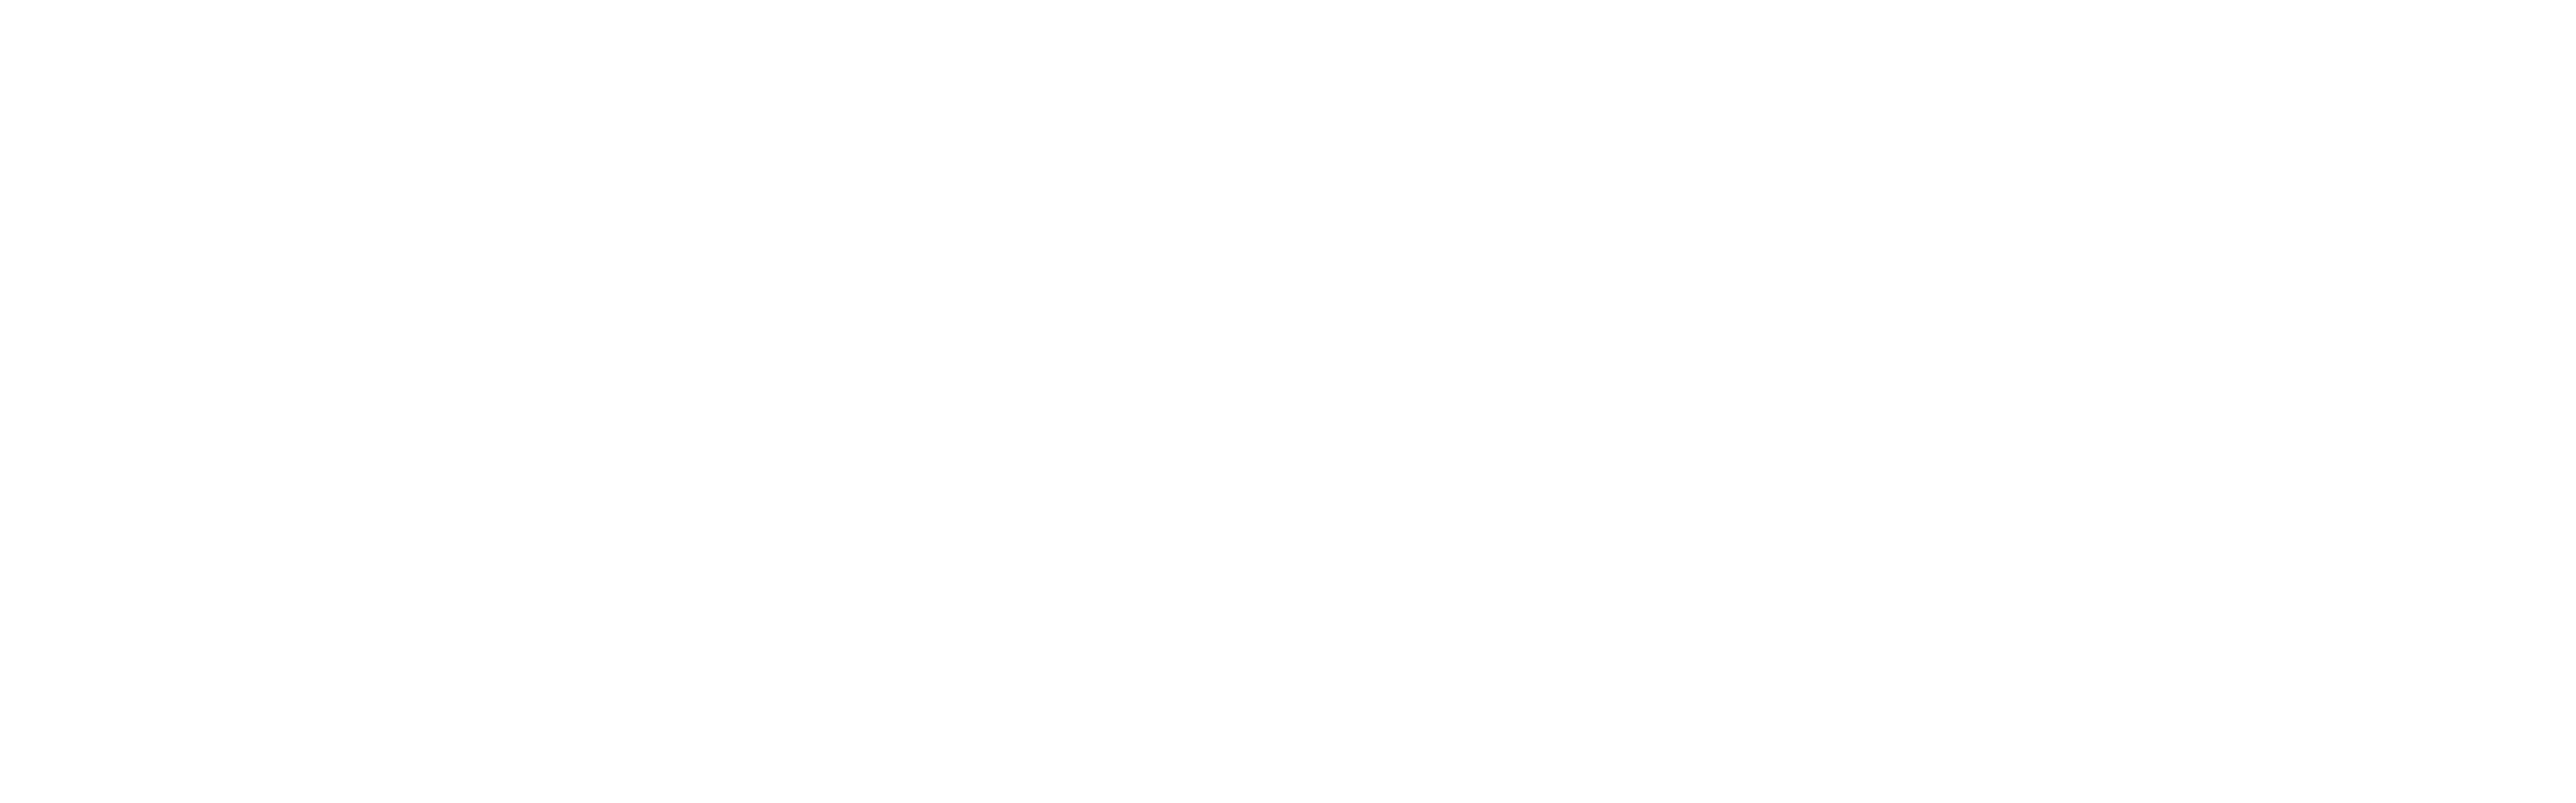 The Villas by Regency Park